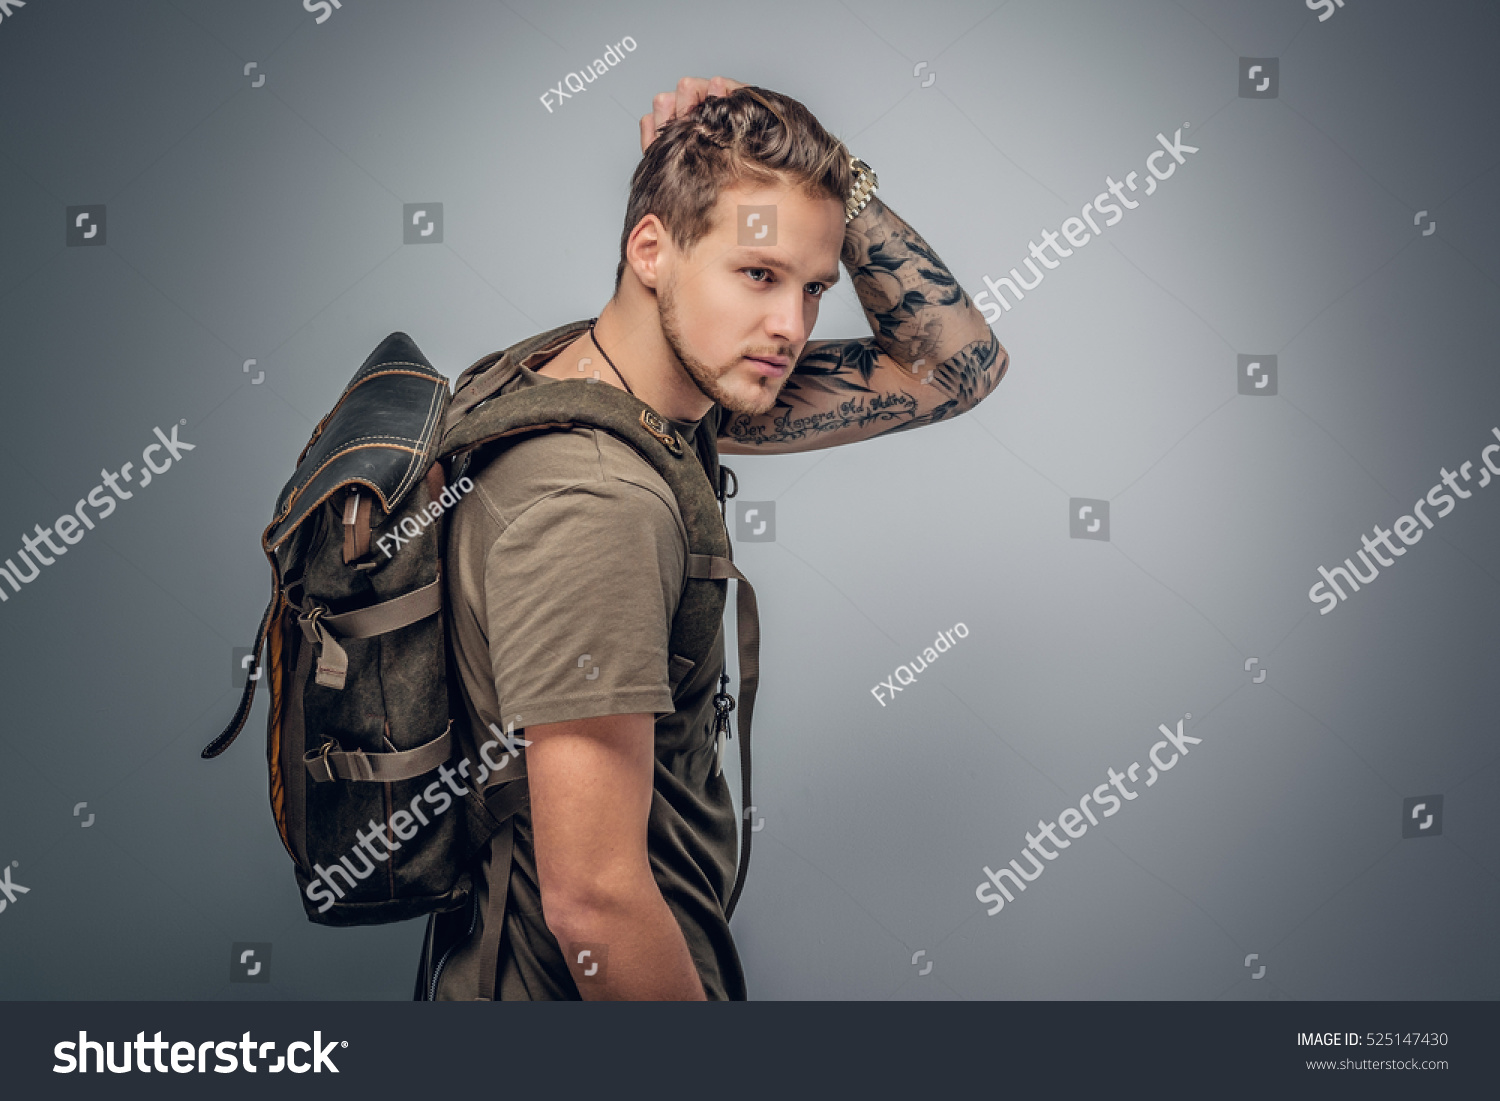 Studio portrait urban style backpackers tattoo stock photo for Urban s tattoo studio